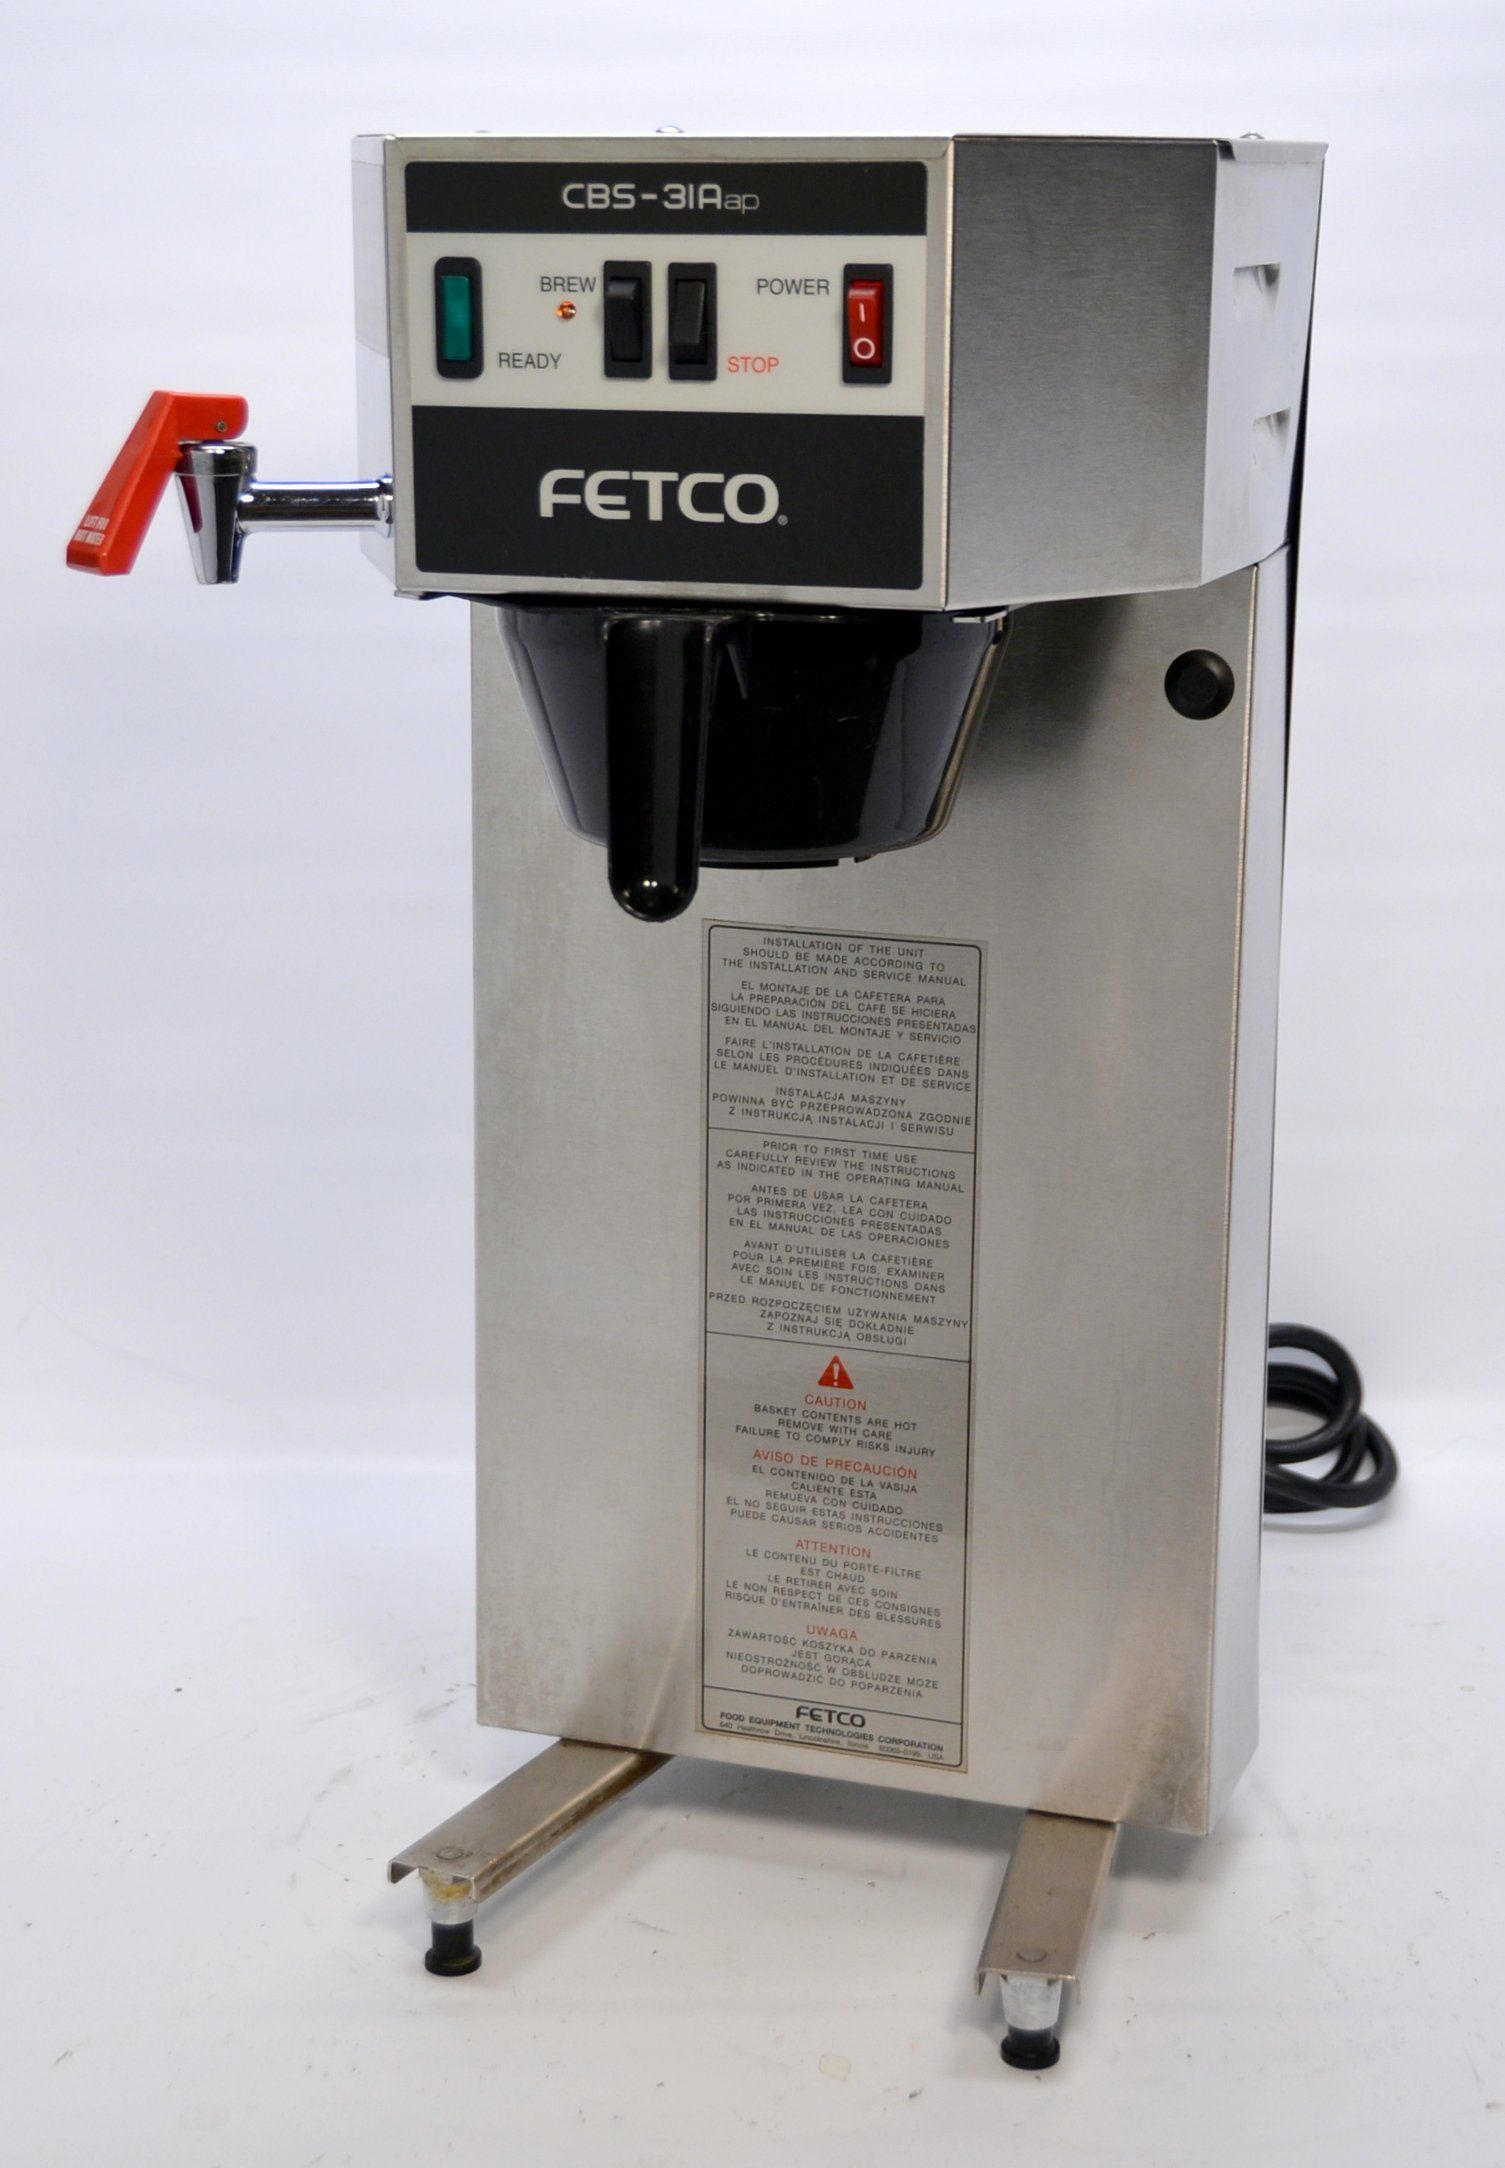 Fetco CBS31Aap Single Airpot Auto Coffee Brewer Machine